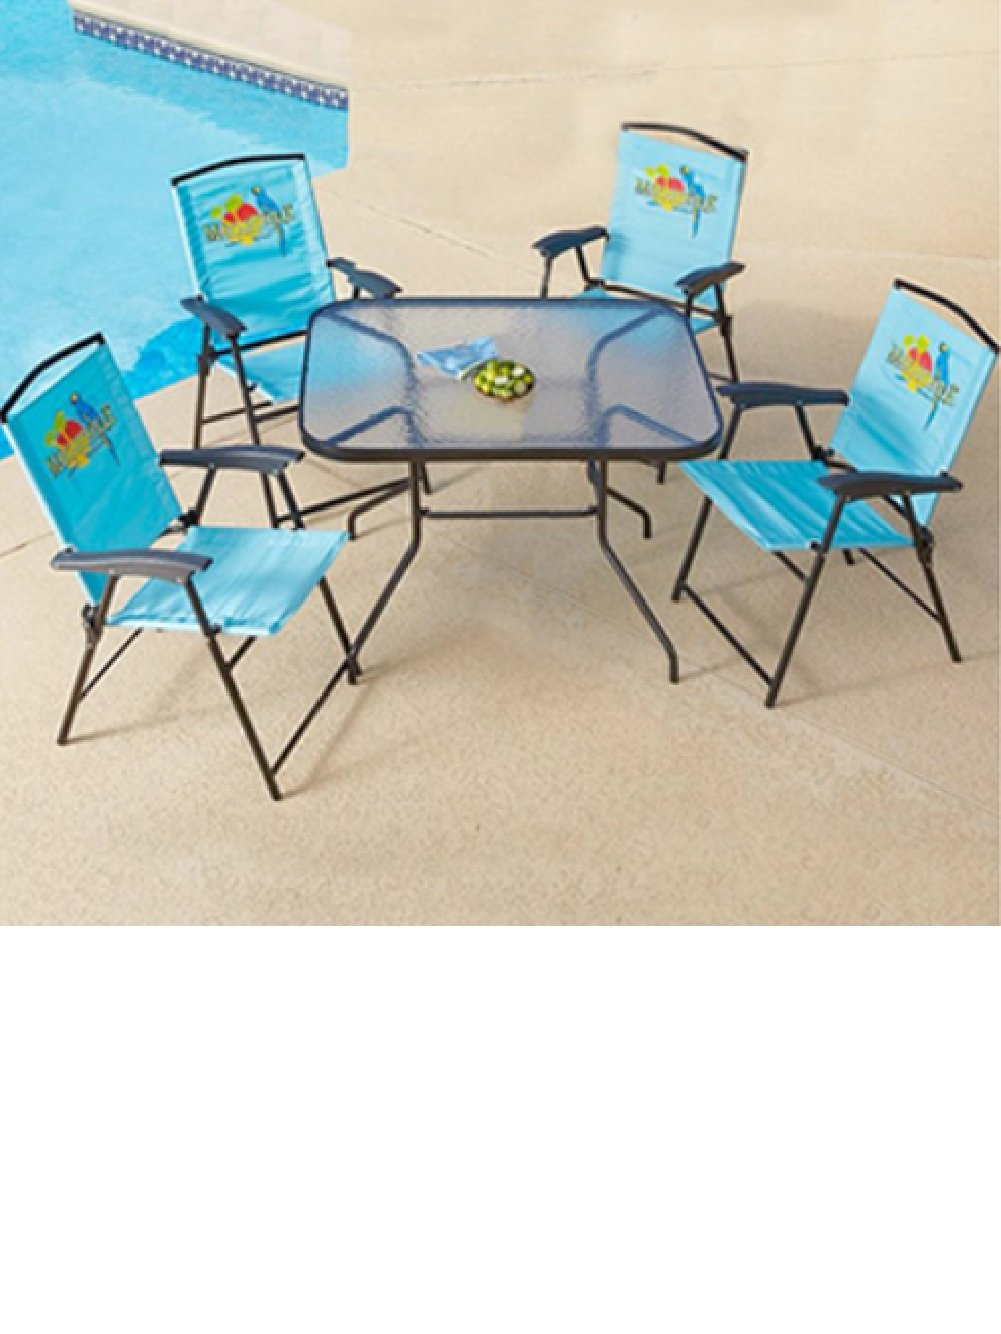 Amazon.com : 5 Pc Outoor Patio Set Folding Table Chairs Margaritaville  Jimmy Buffetu0027s : Outdoor And Patio Furniture Sets : Garden U0026 Outdoor